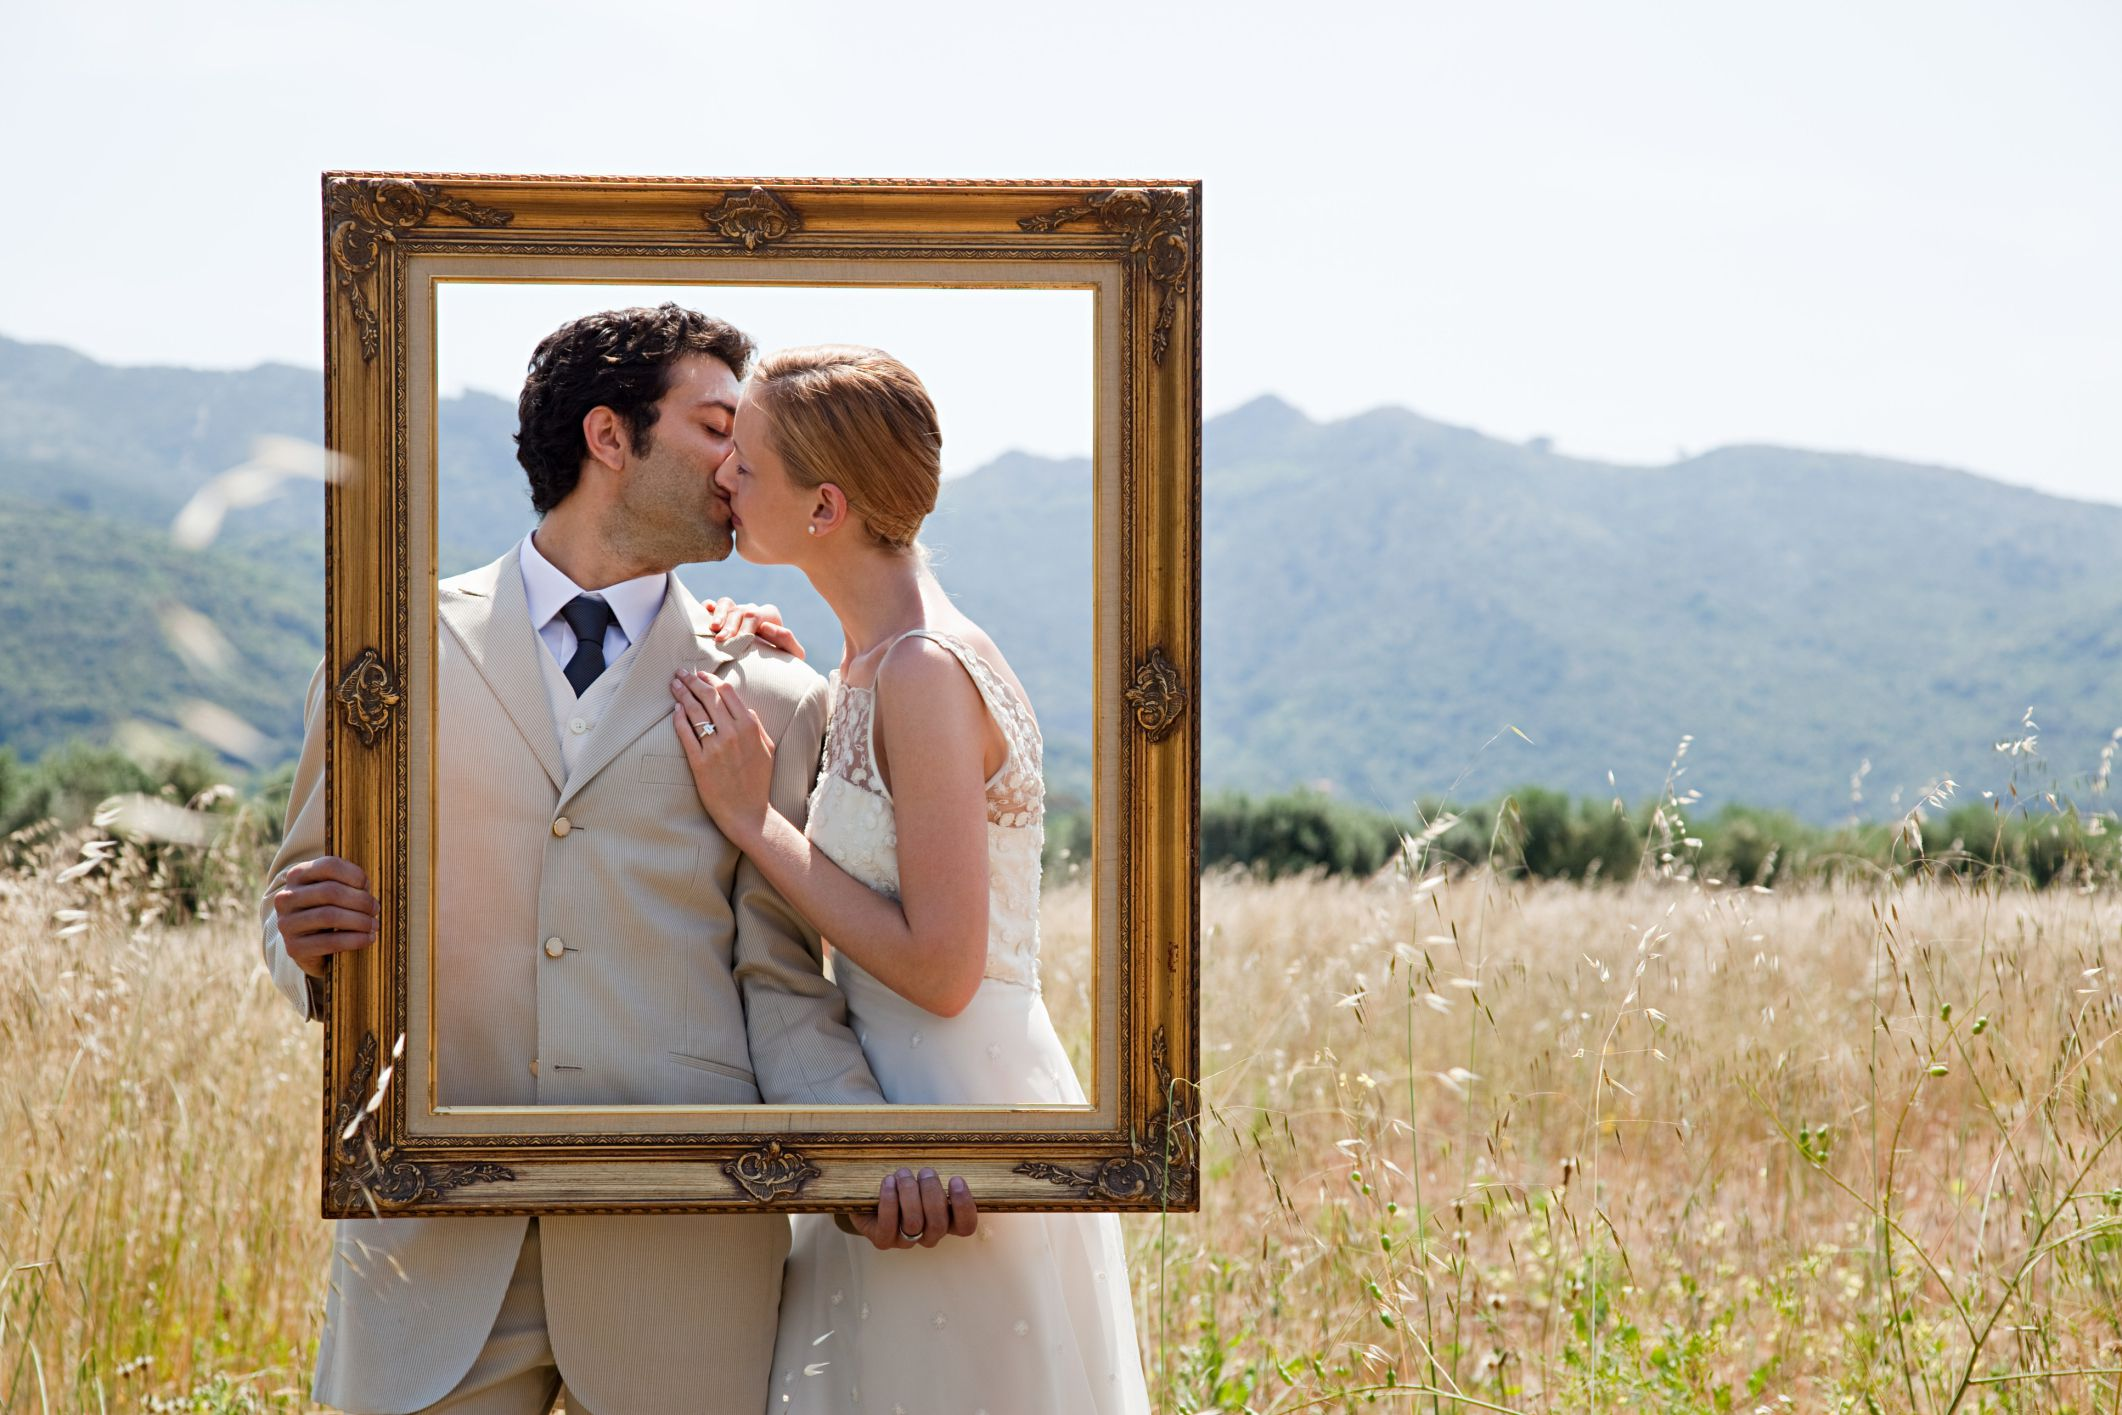 frame creative wedding photography ideas